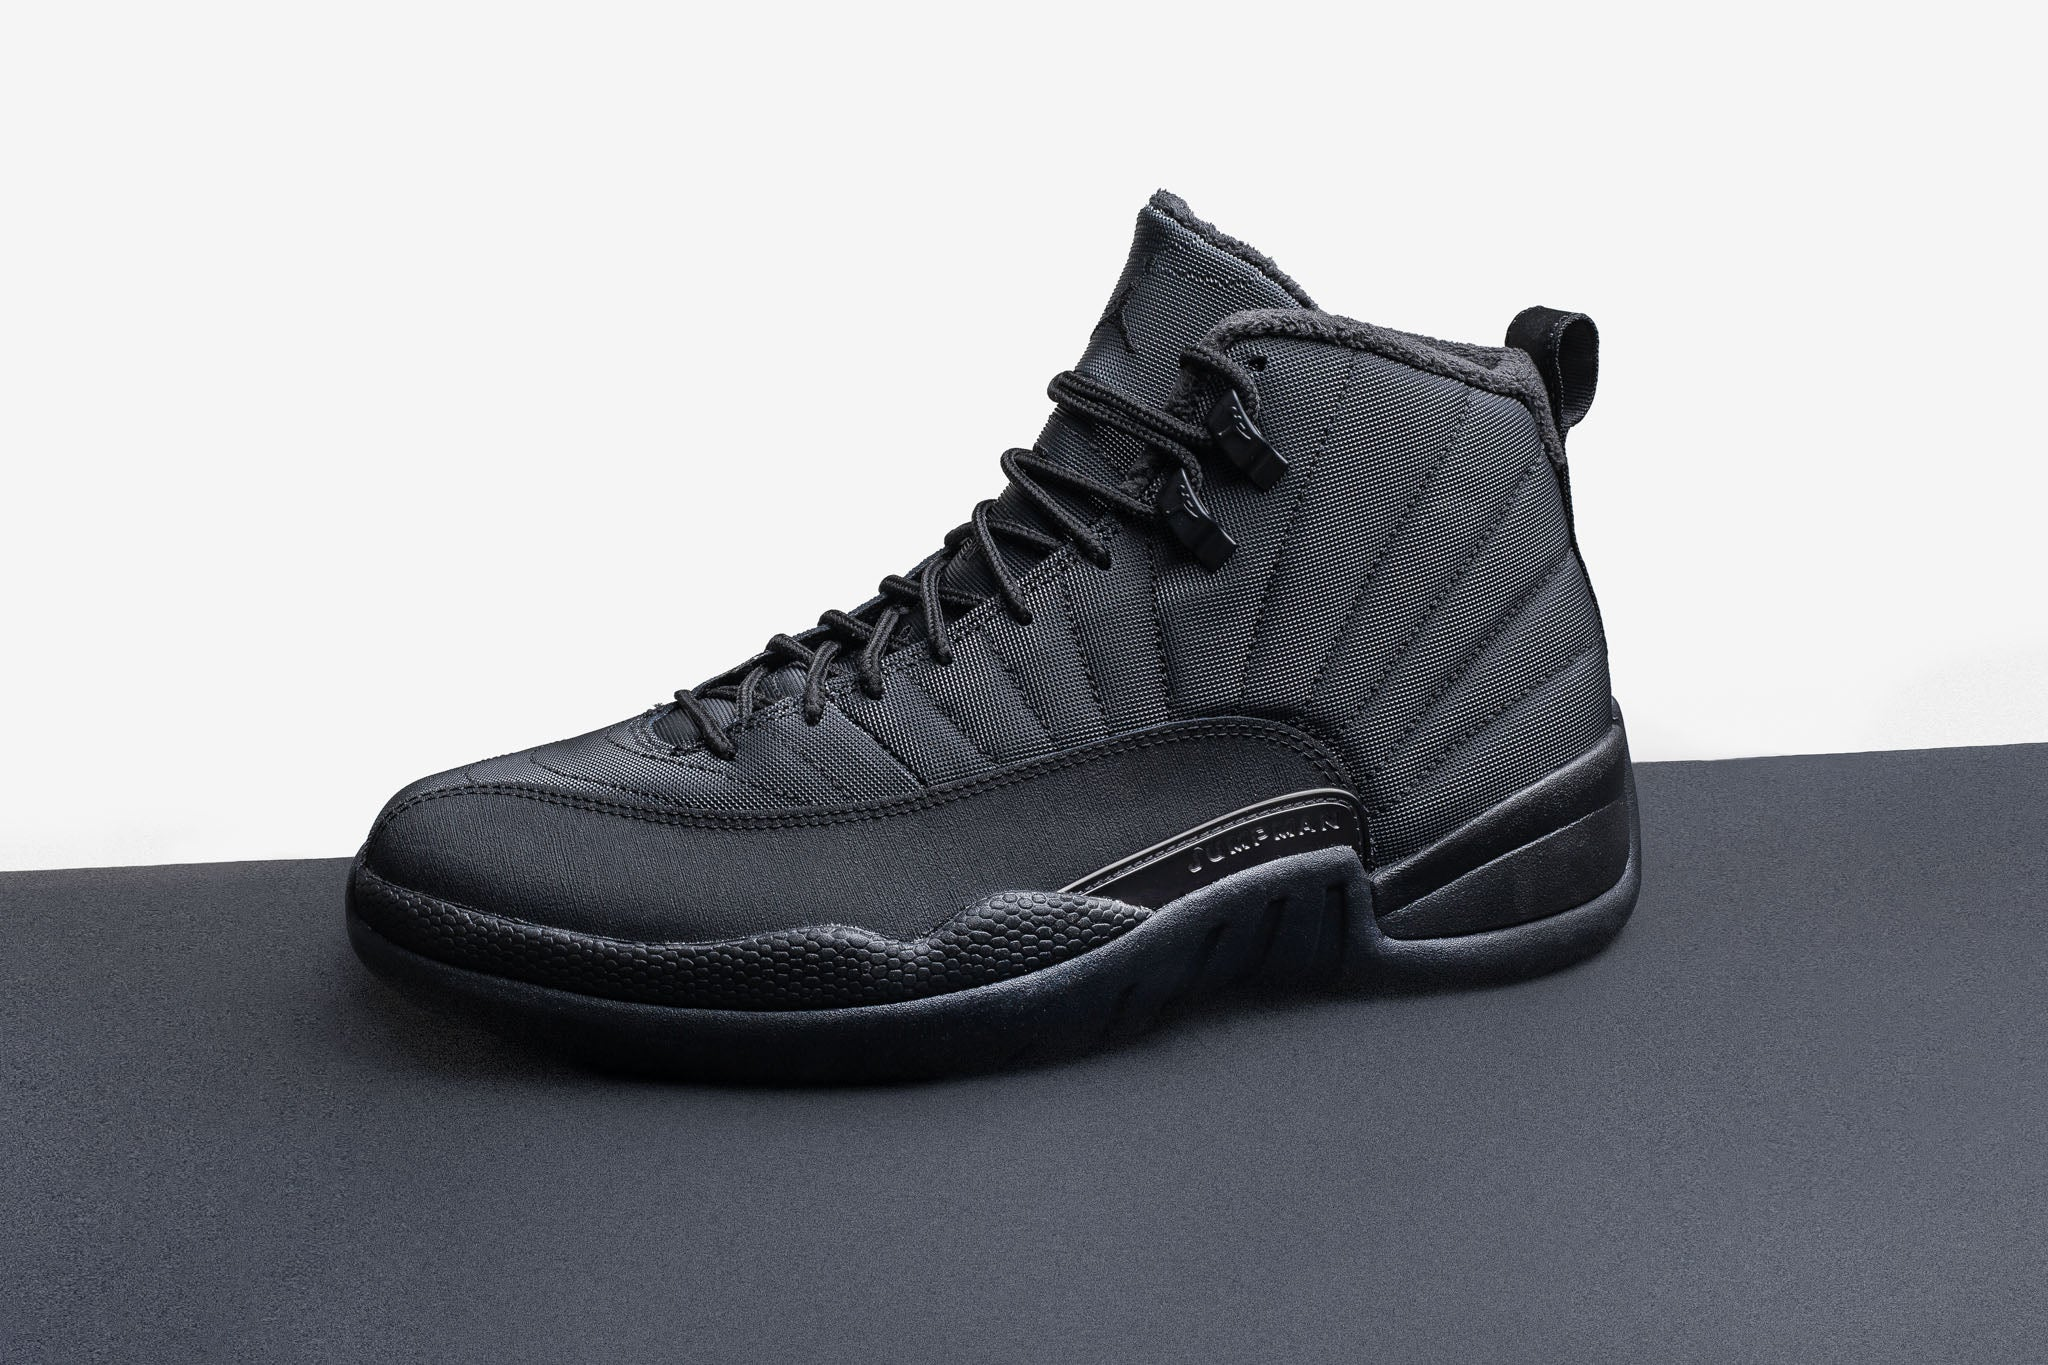 release date f3e30 afcca ... coupon code for air jordan 12 winterized d2f30 653c8